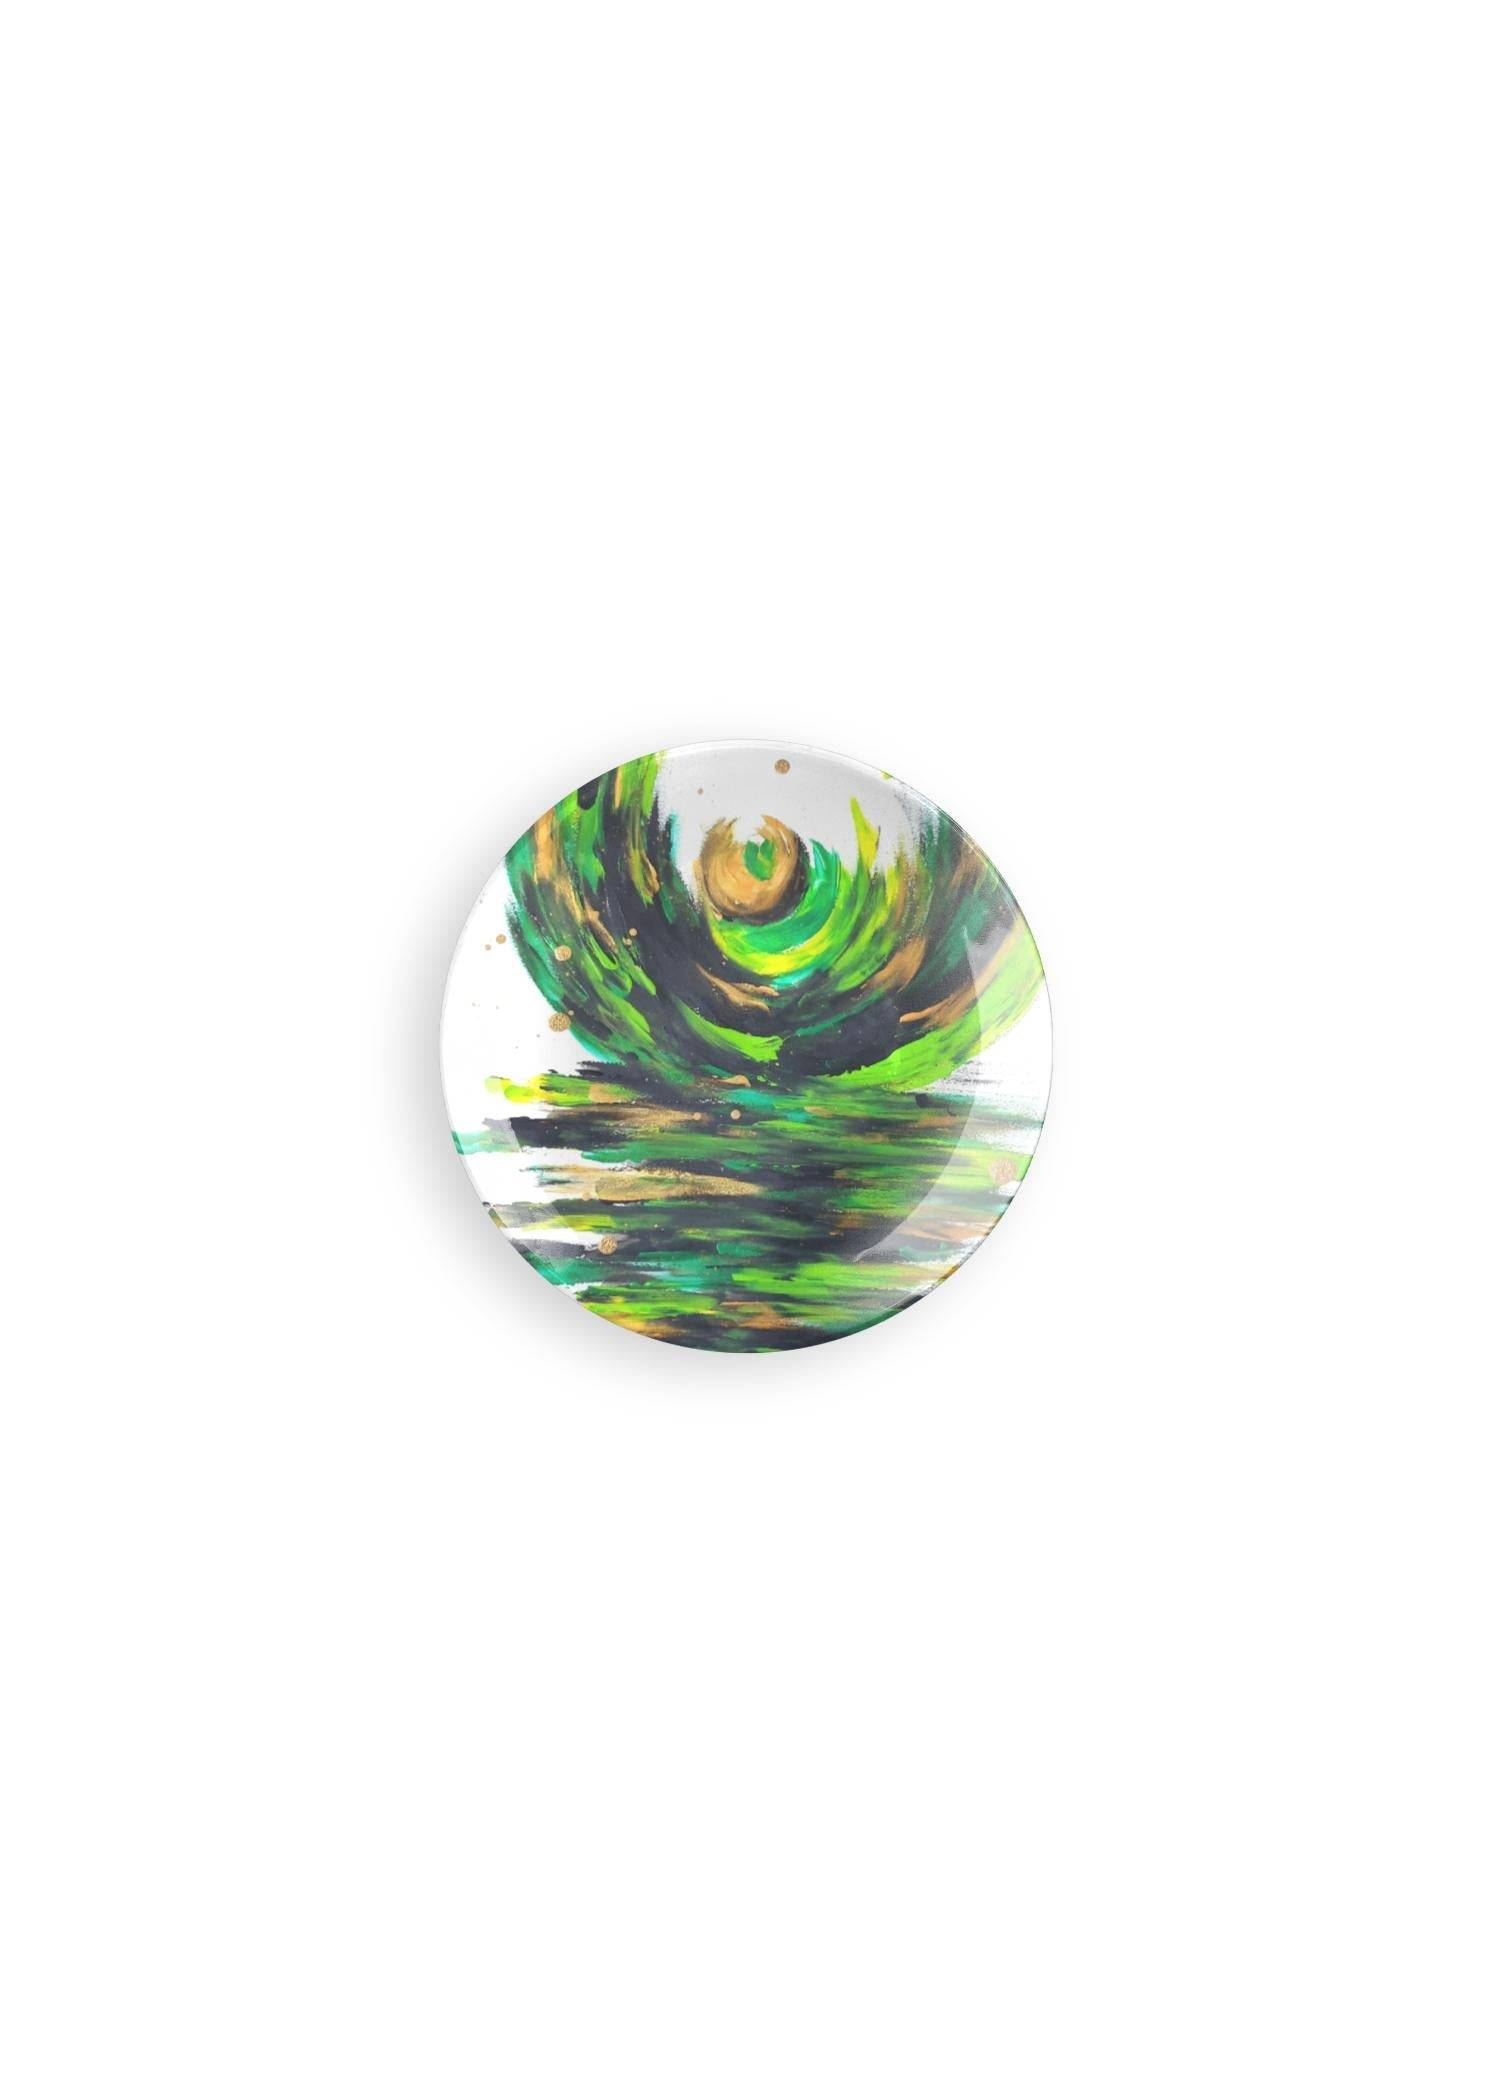 VIDA Round Glass Tray - Love Sees No Boundaries in Green/White/Yellow by VIDA Original Artist  - Size: Large